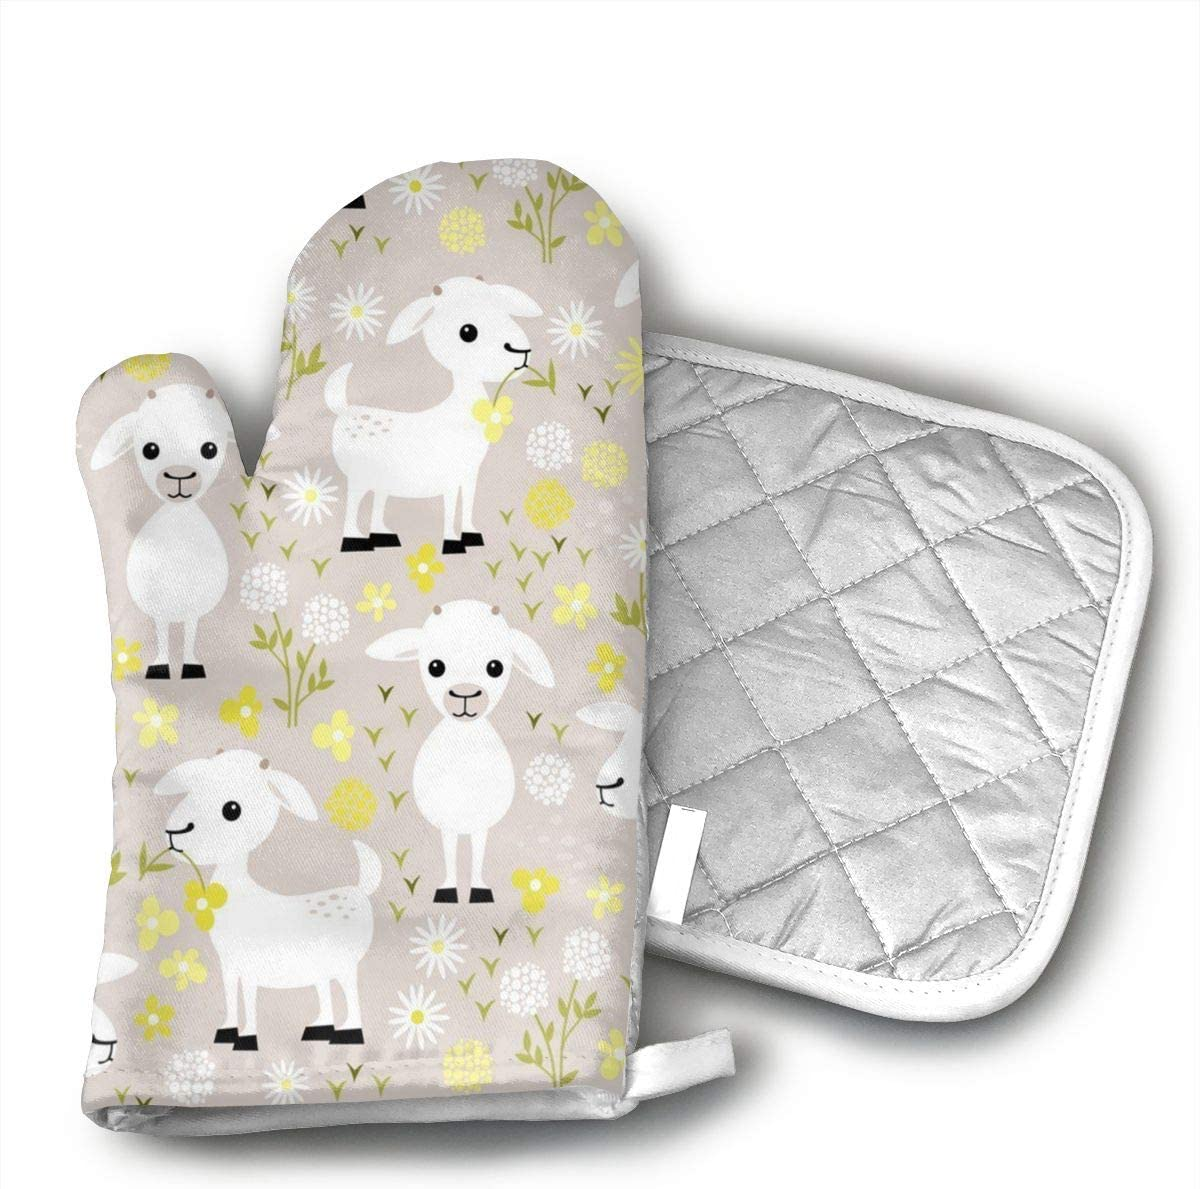 TUJABZA71 Baby Goats Oven Mitts Heat Resistant Kitchen Oven Gloves Machine Washable Terry Oven Mitts